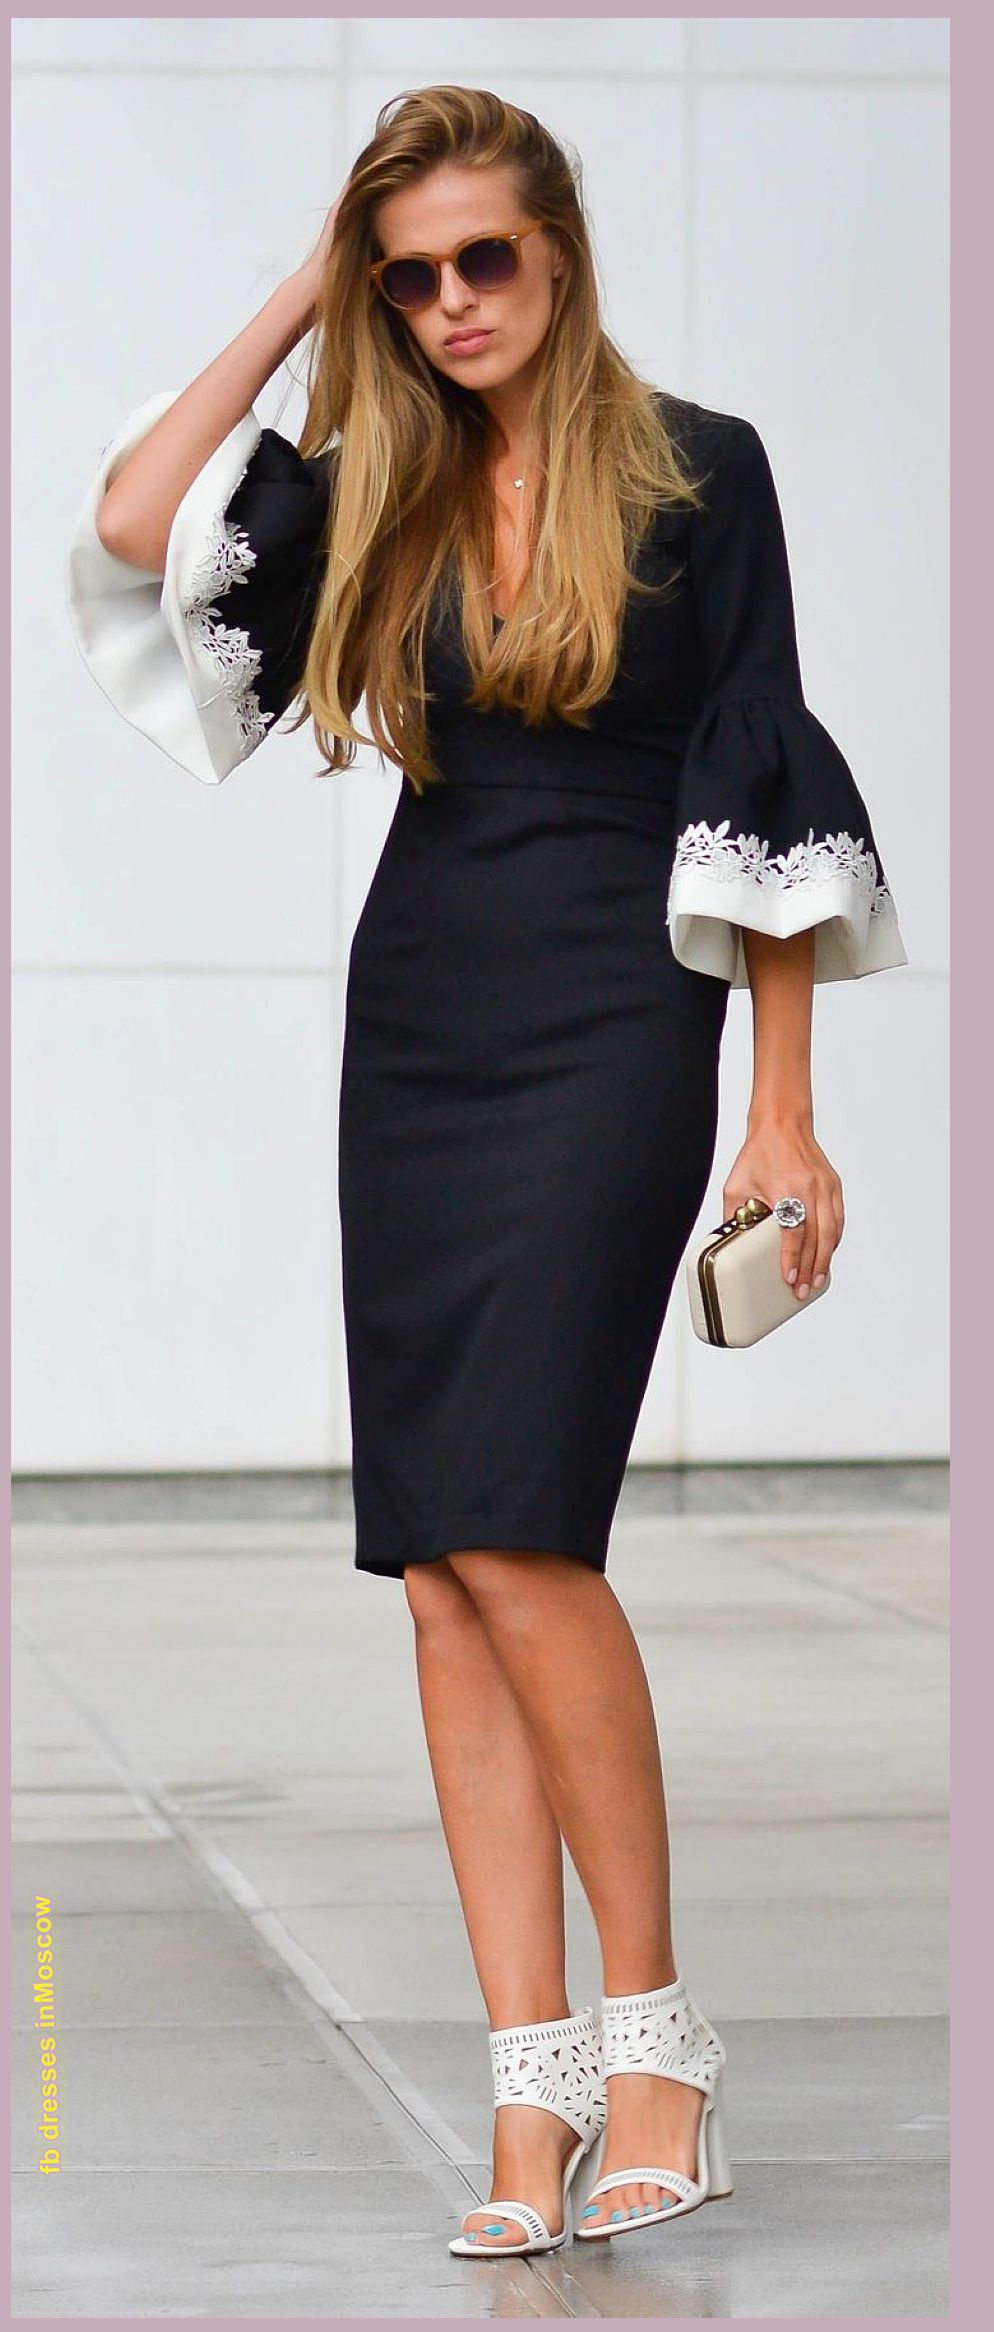 armani black knee length dress trendy bell sleeves with stark white floral embroidery timeless. Black Bedroom Furniture Sets. Home Design Ideas